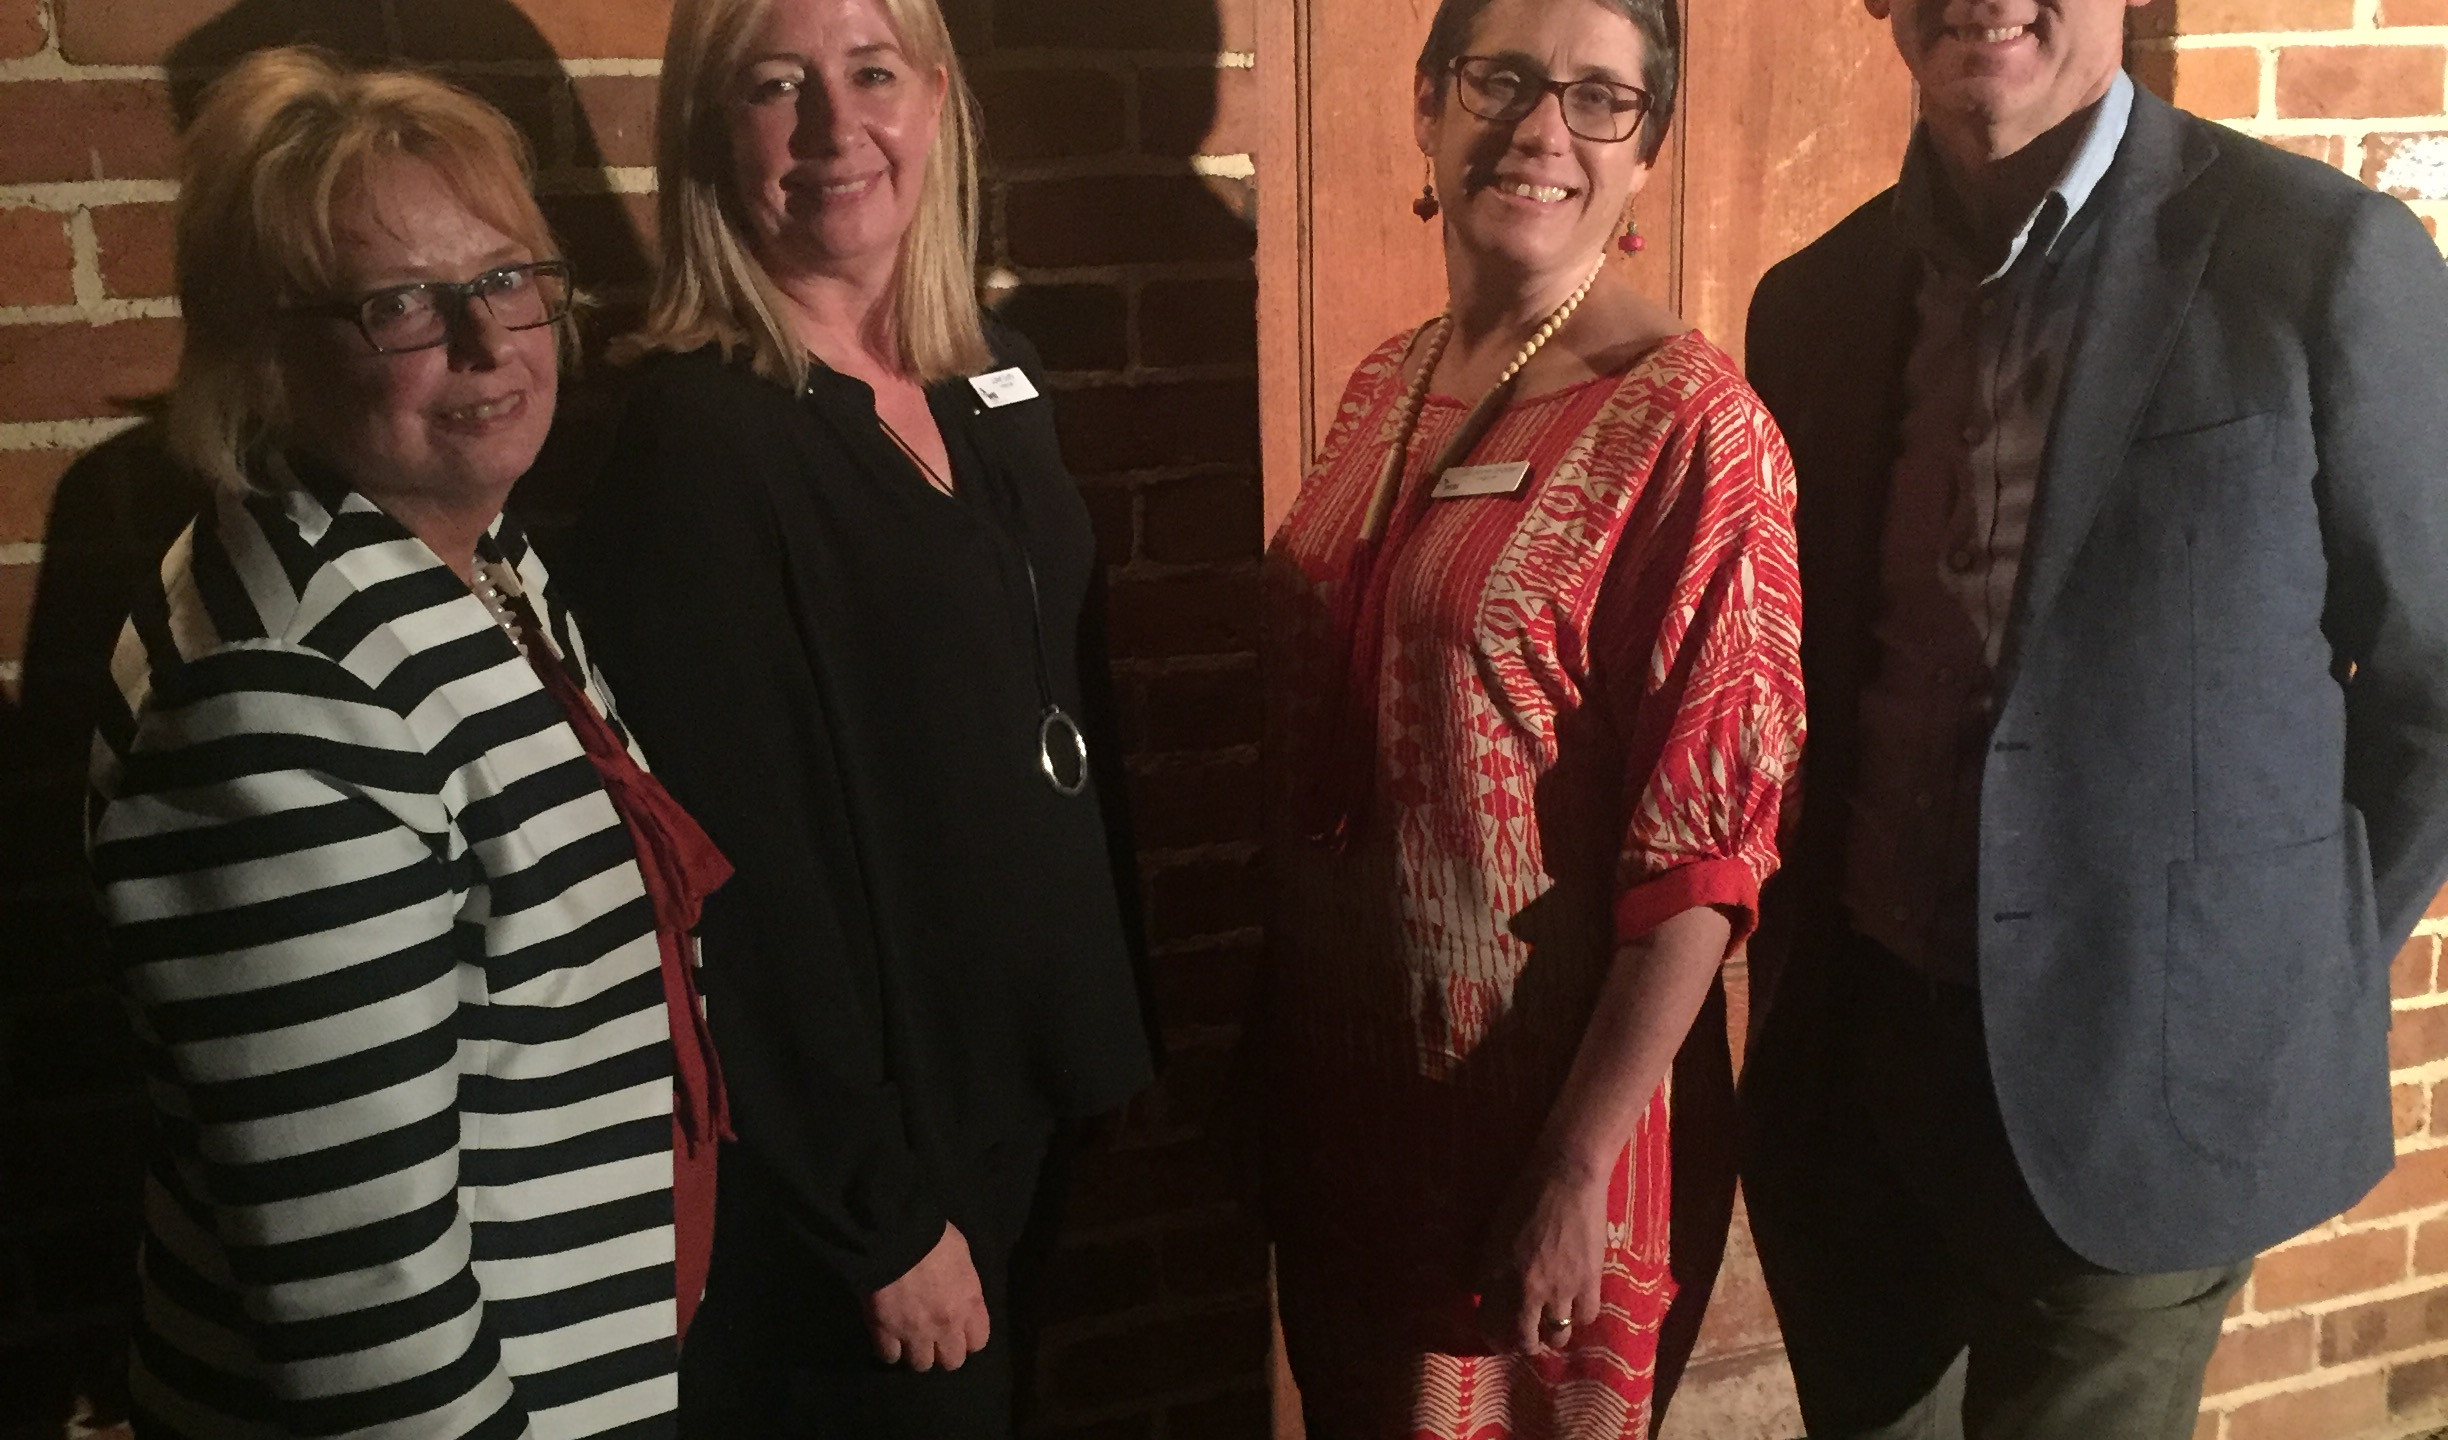 L to R: WRI CEO Kathy Woolley with WRI Chair Juliet Duffy, Treasurer Jo-Anne Strader and Mayor of Blayney Shire Scott Ferguson.